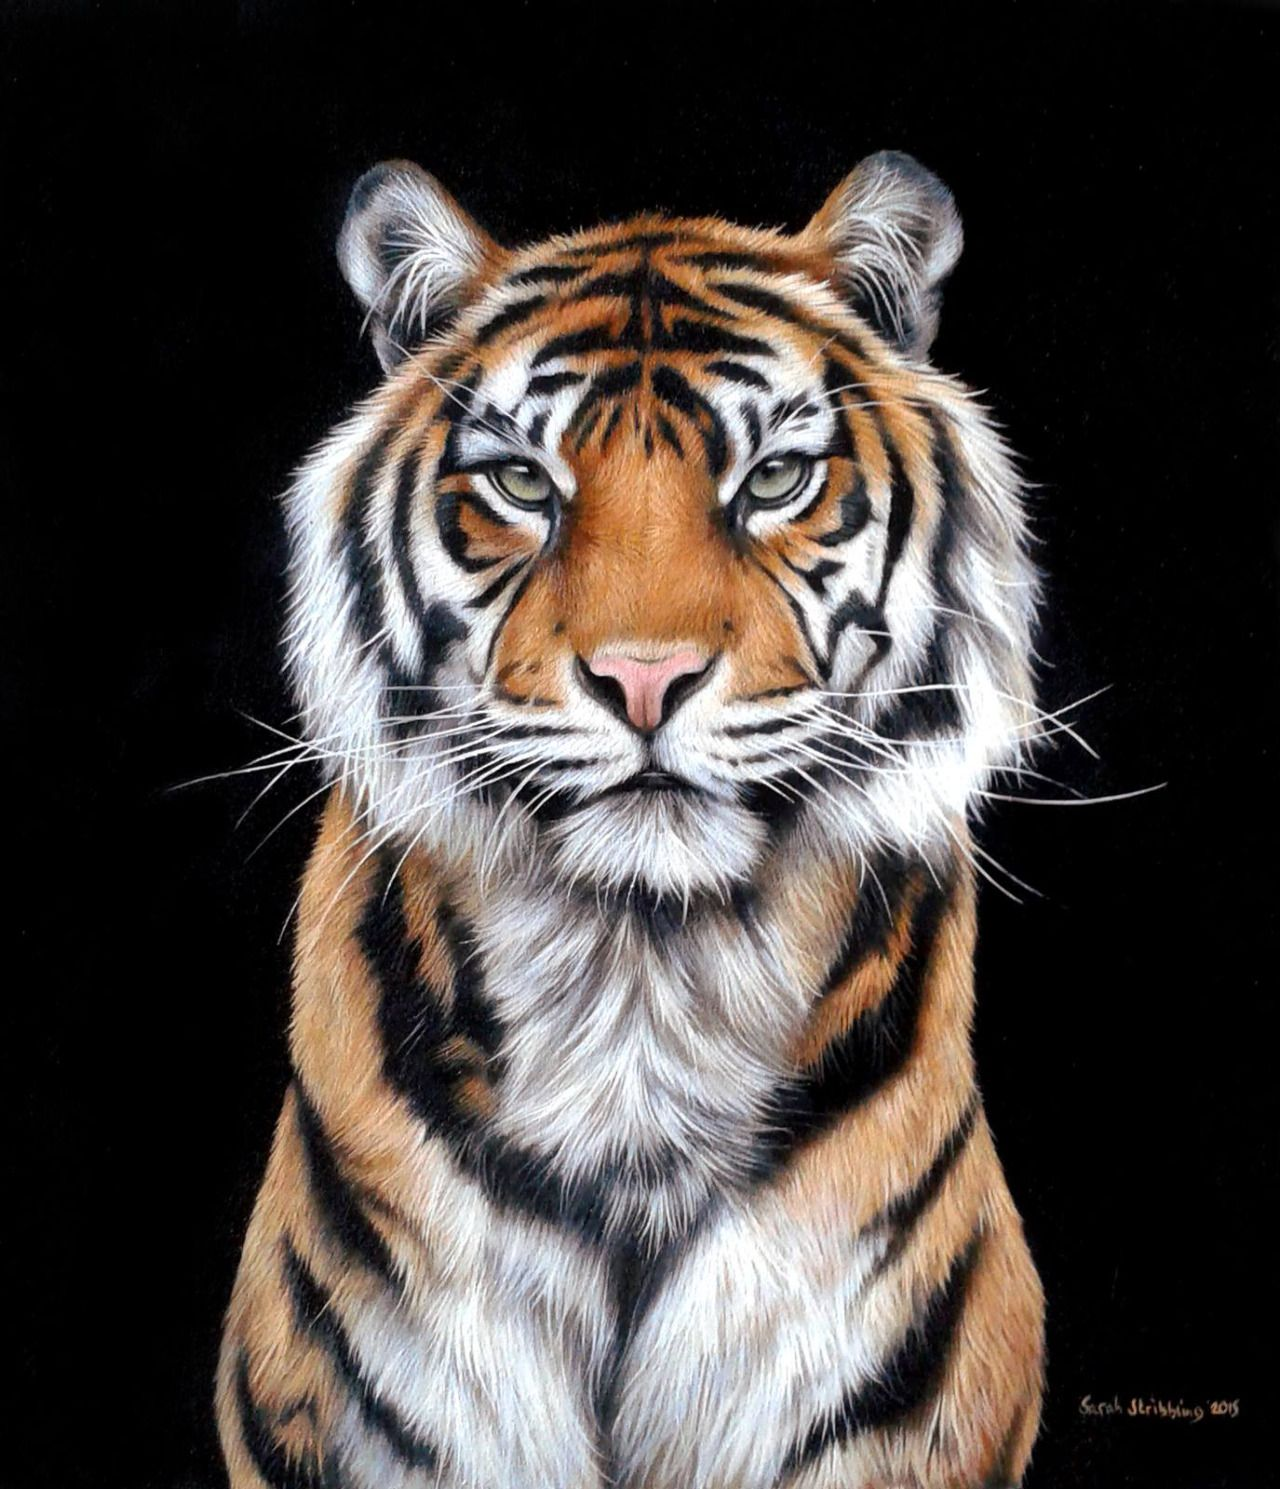 Brookshawphotography Tiger Painting Tiger Artwork Tiger Art